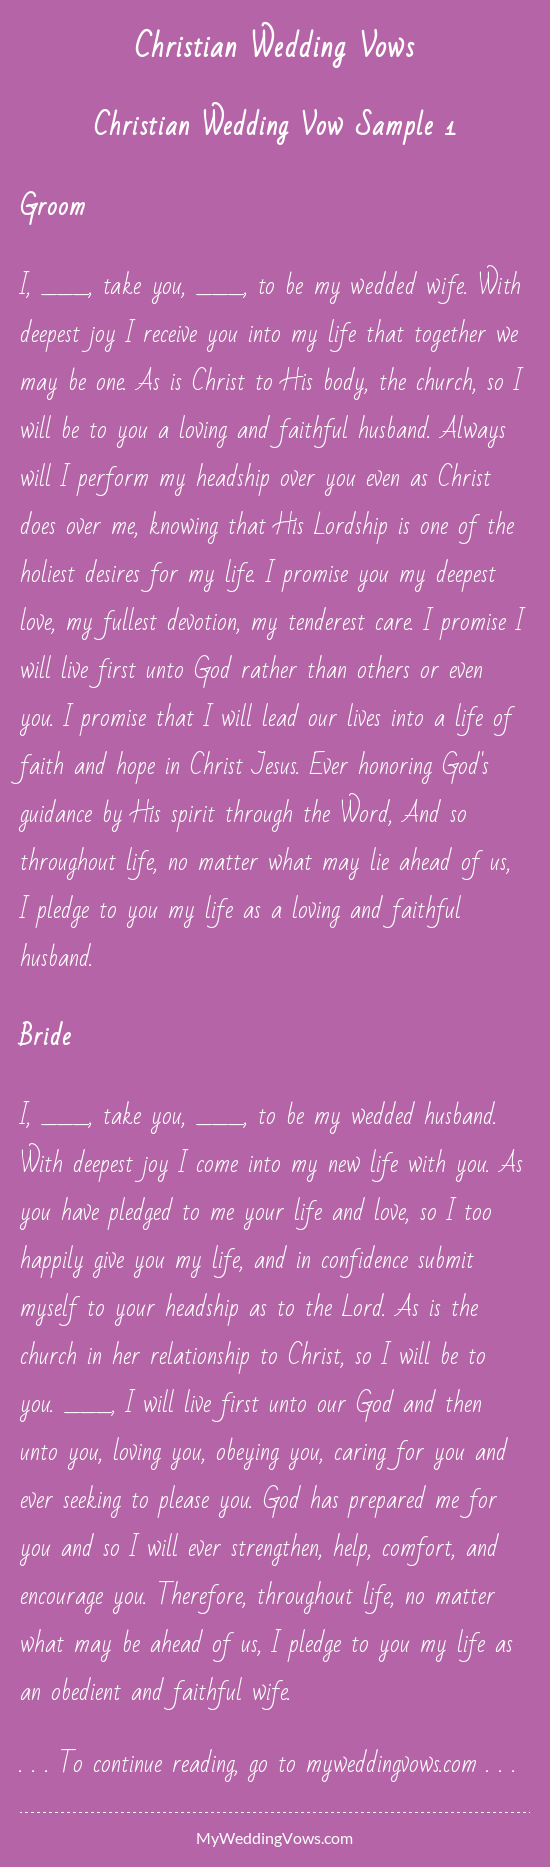 Christian Wedding Vows Christian Wedding Vows Traditional Wedding Vows Christian Wedding